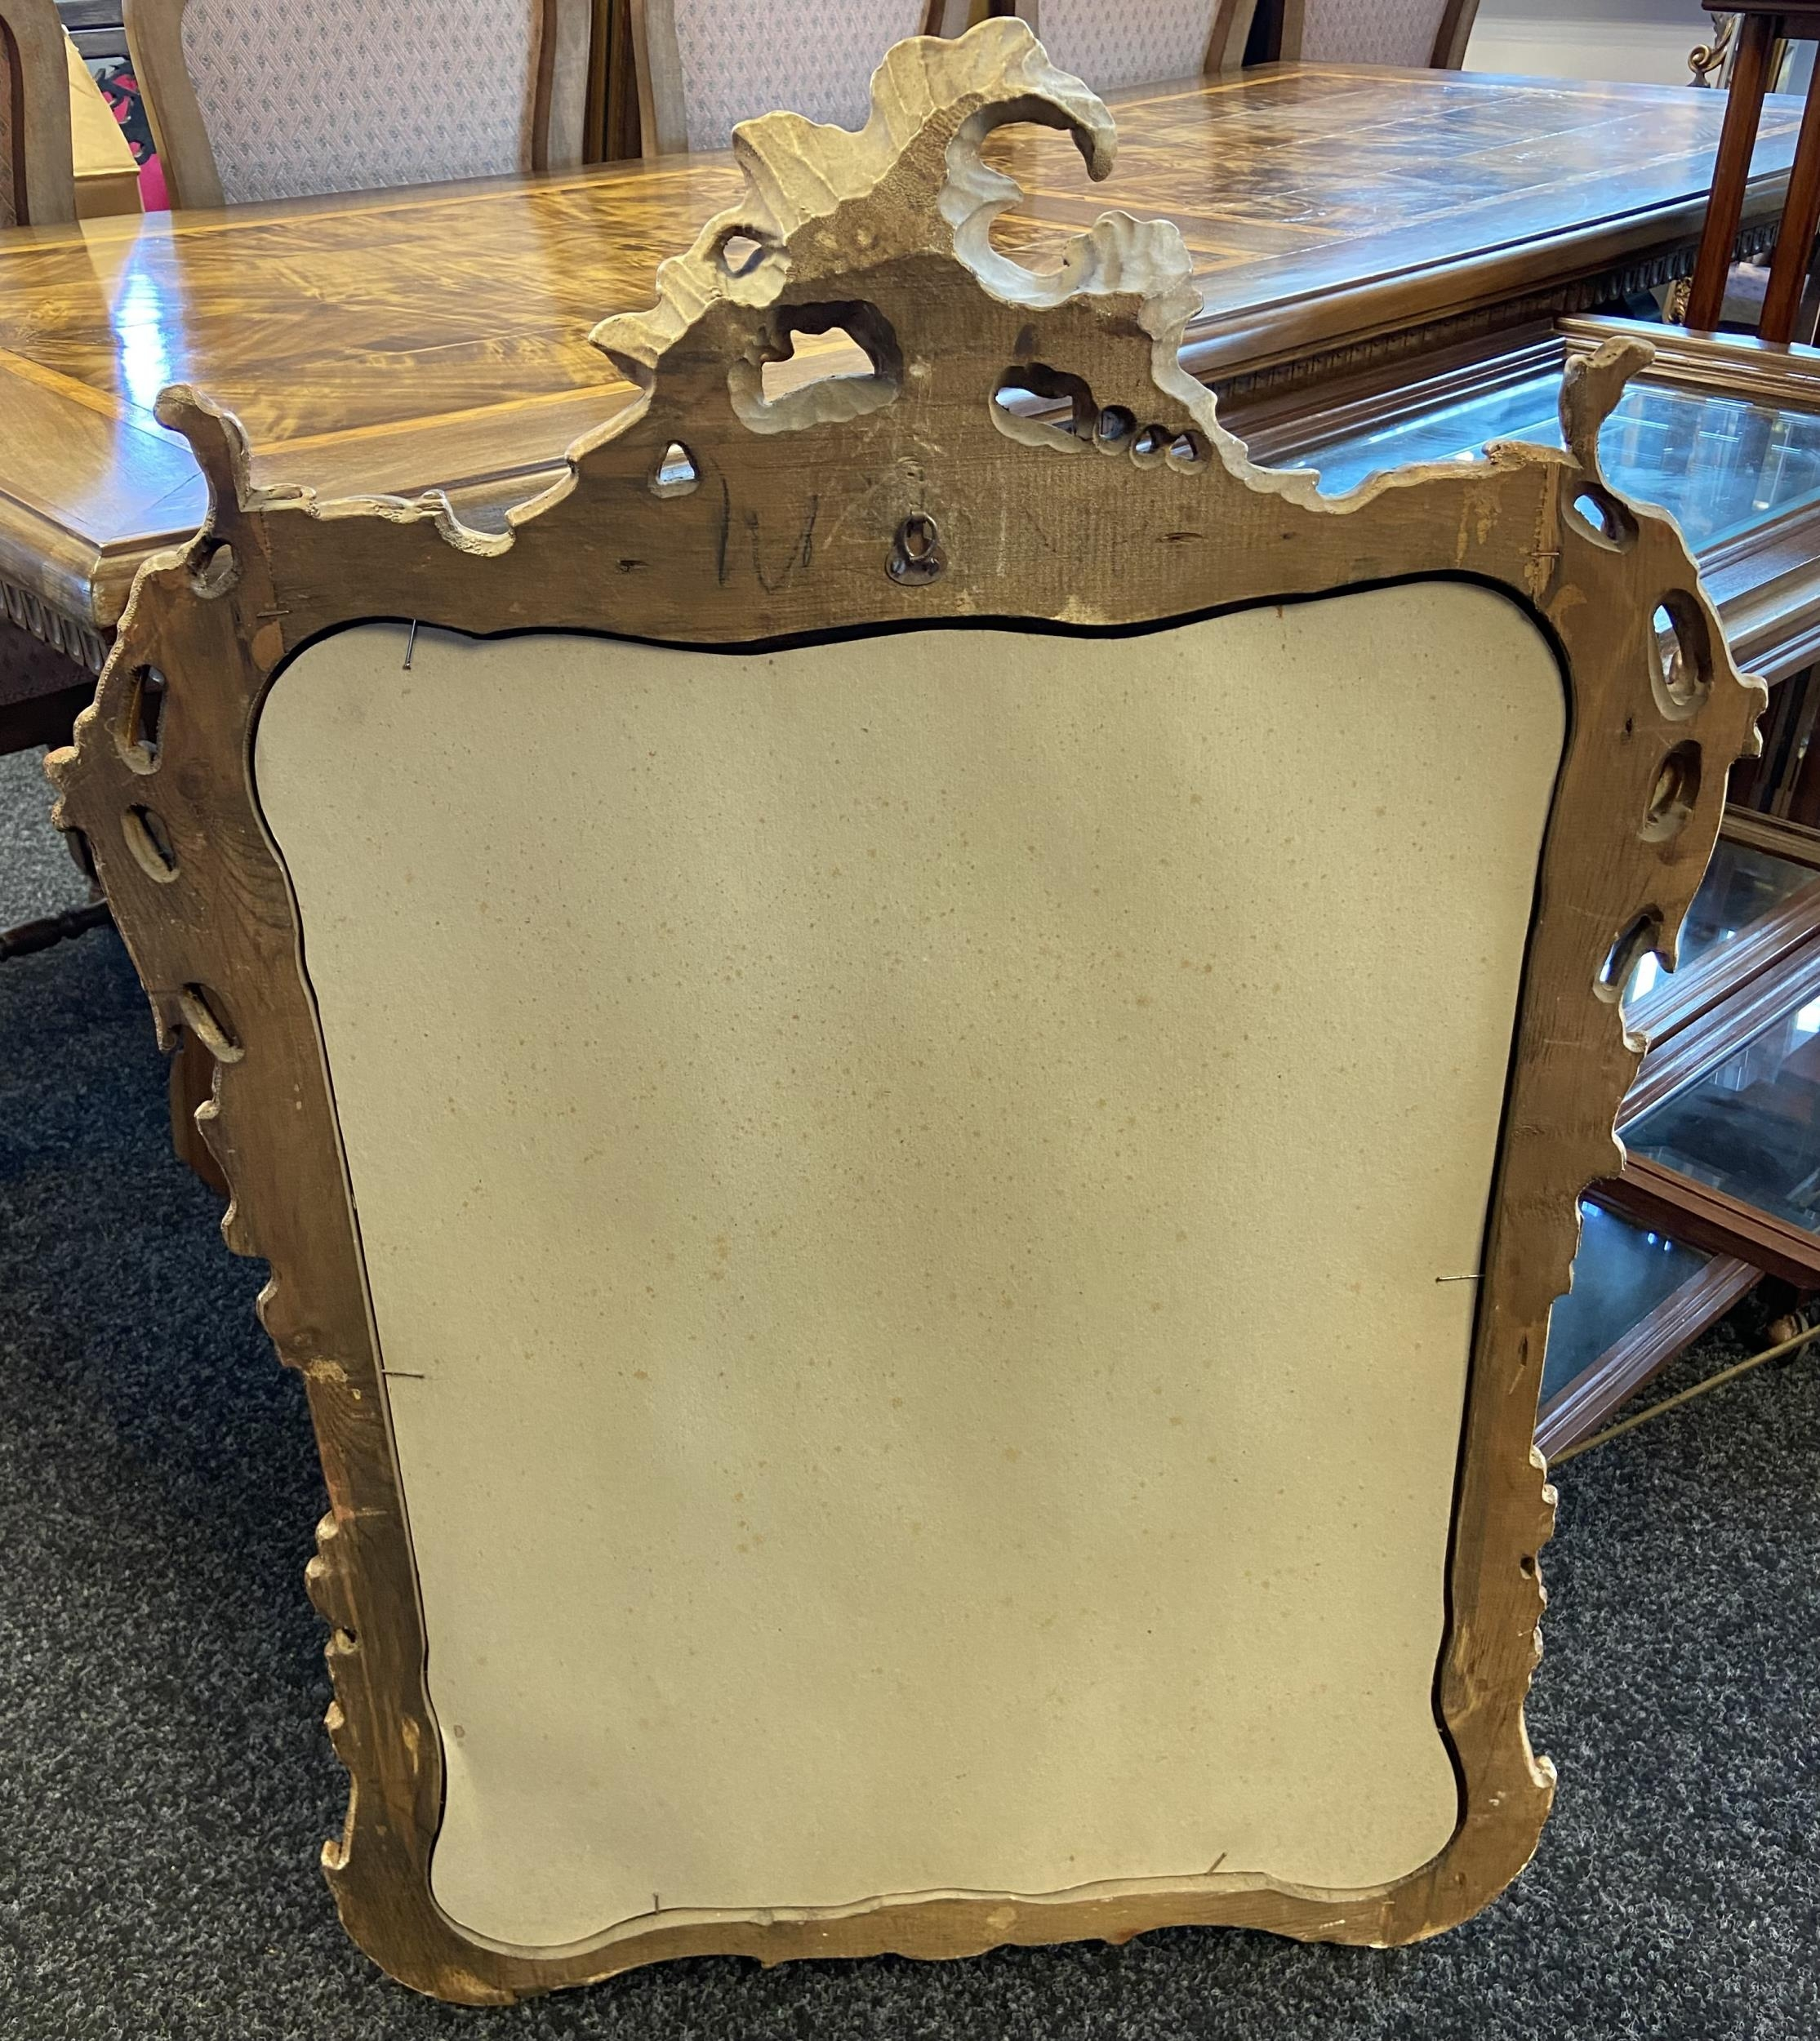 A Large antique style gilt frame mirror. [97x70cm] - Image 3 of 3